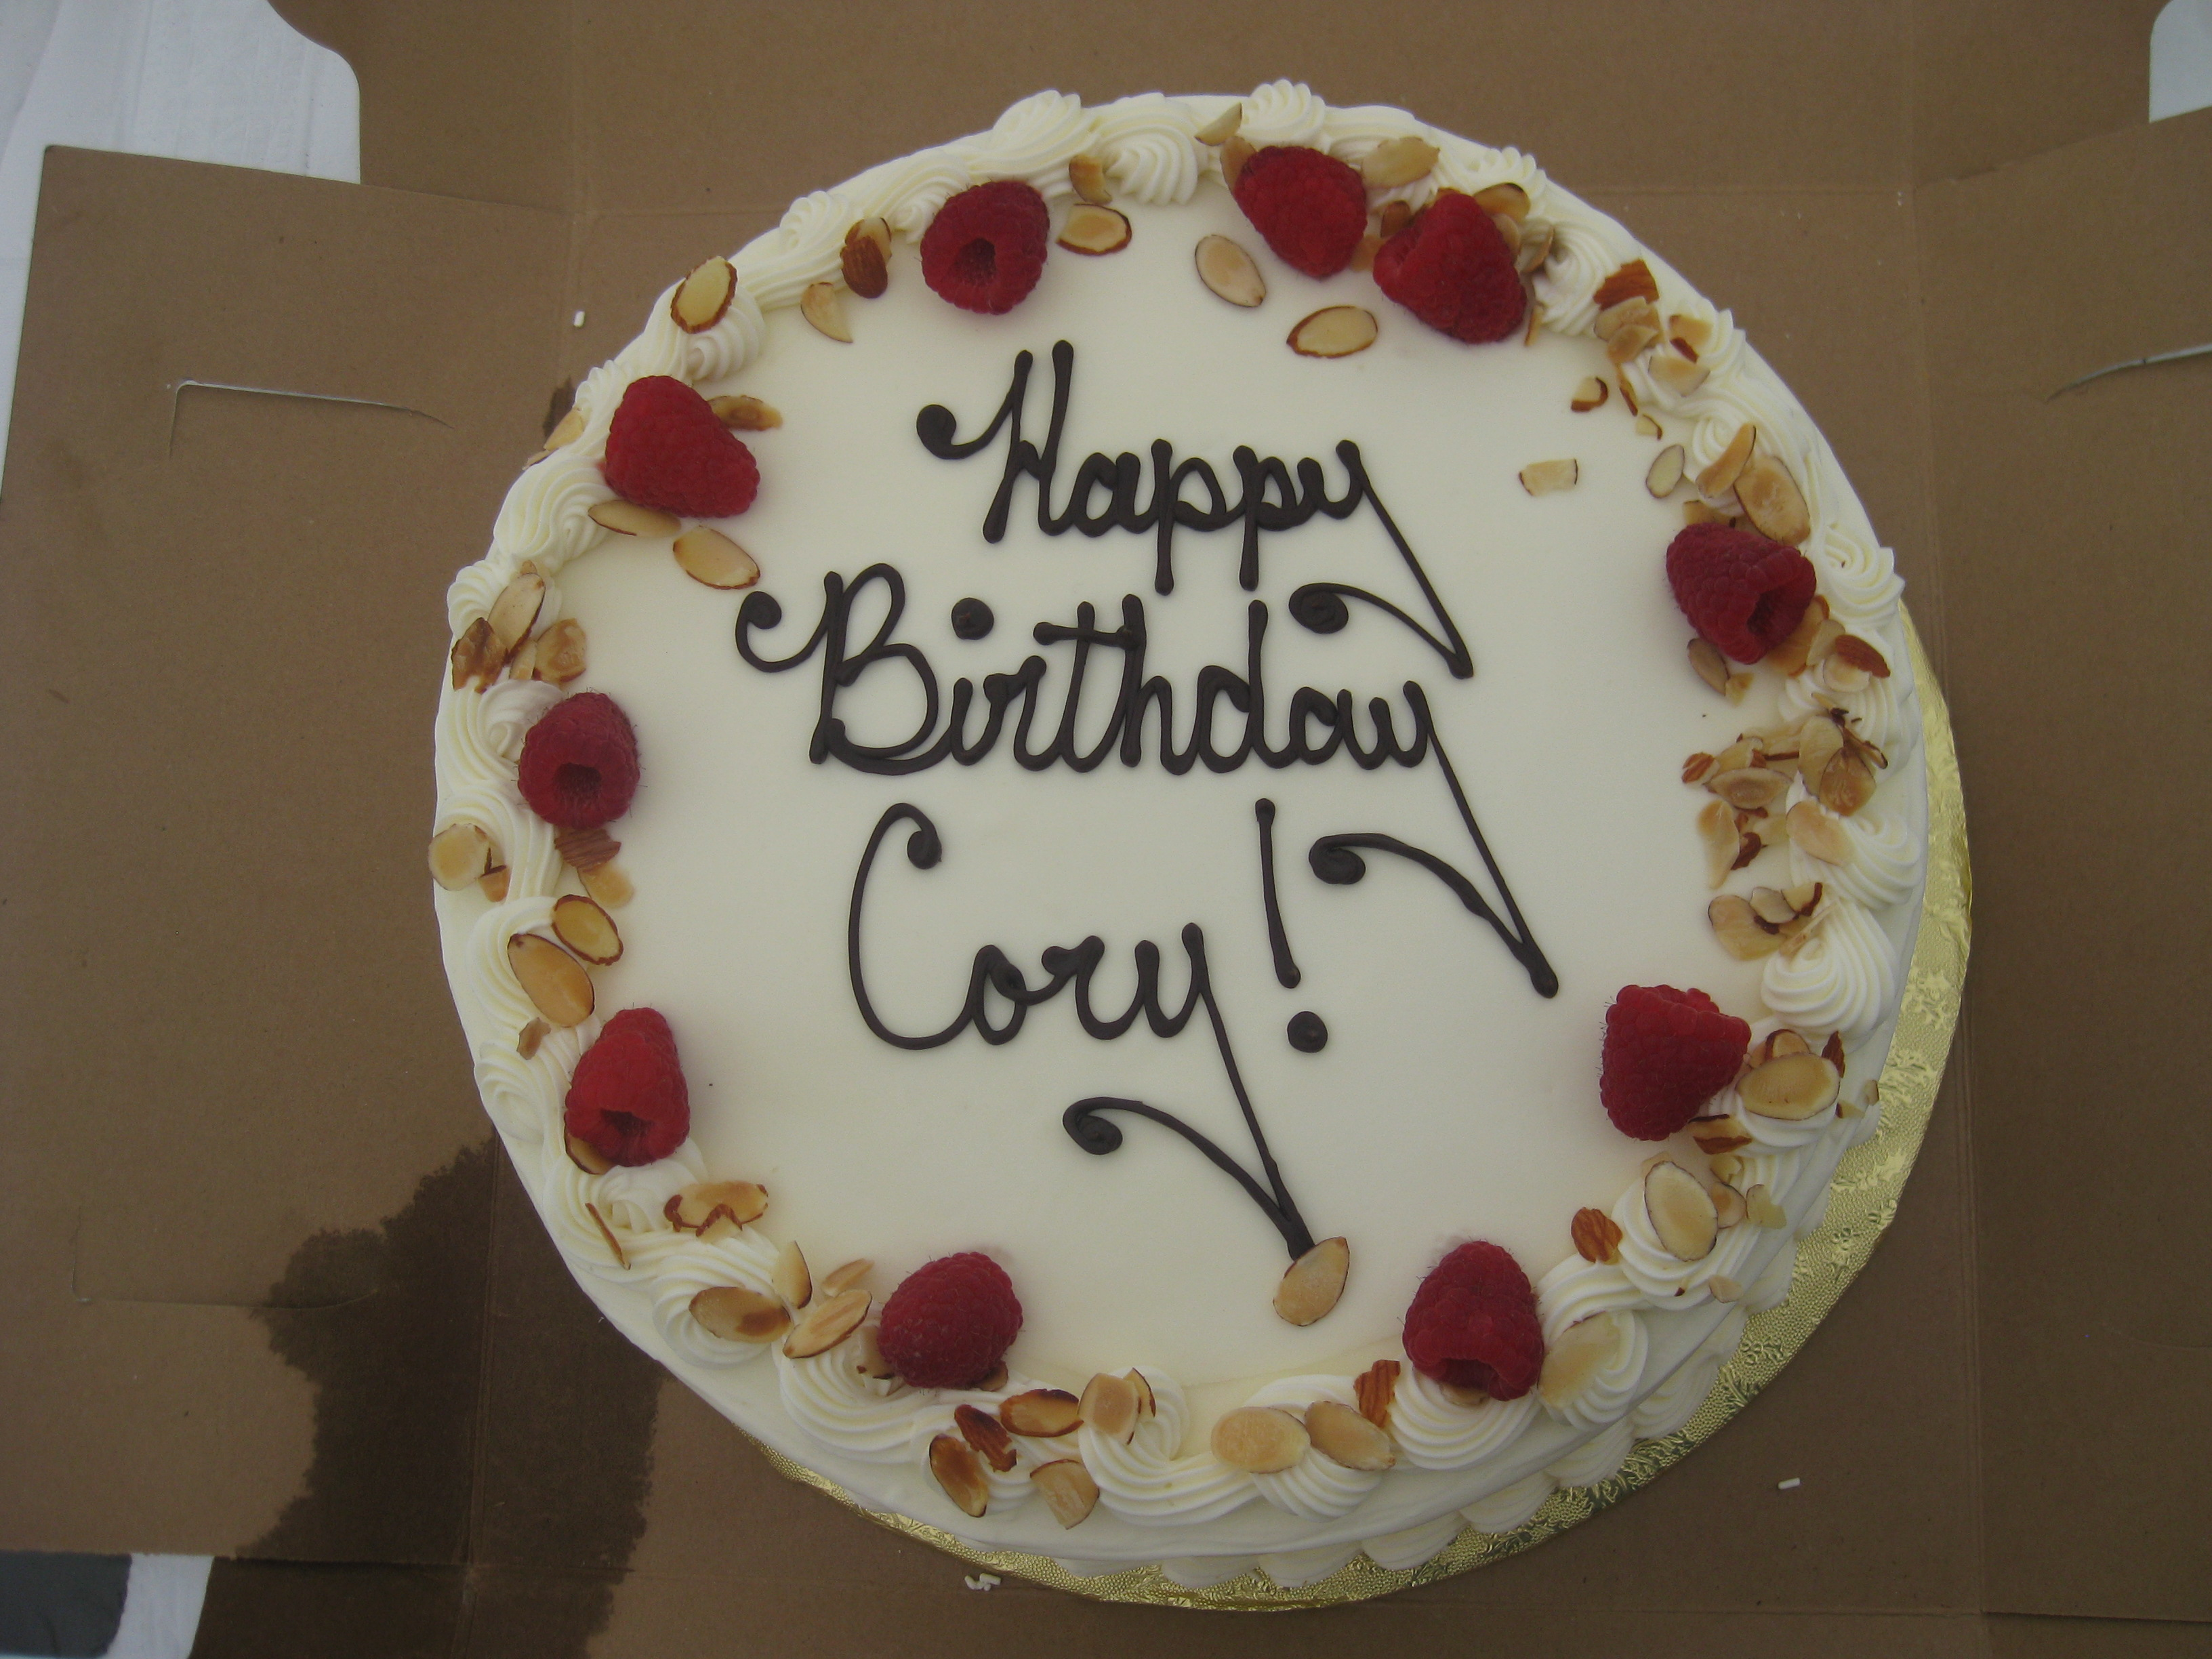 Food - Cory's birthday cake